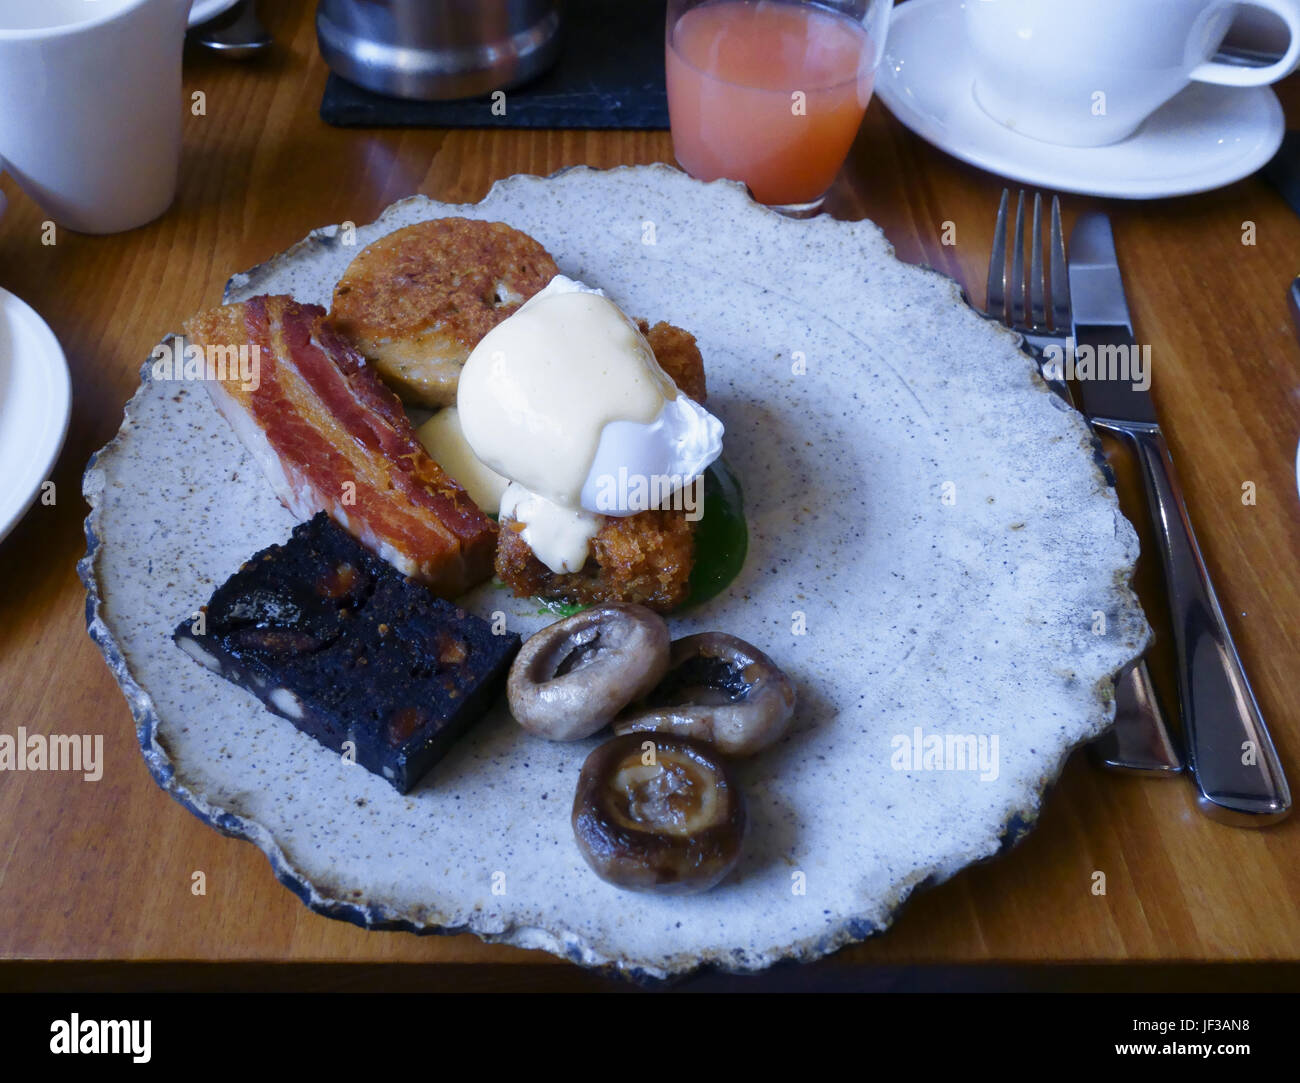 breakfast at Rogan and co Cartmel Cumbria - Stock Image